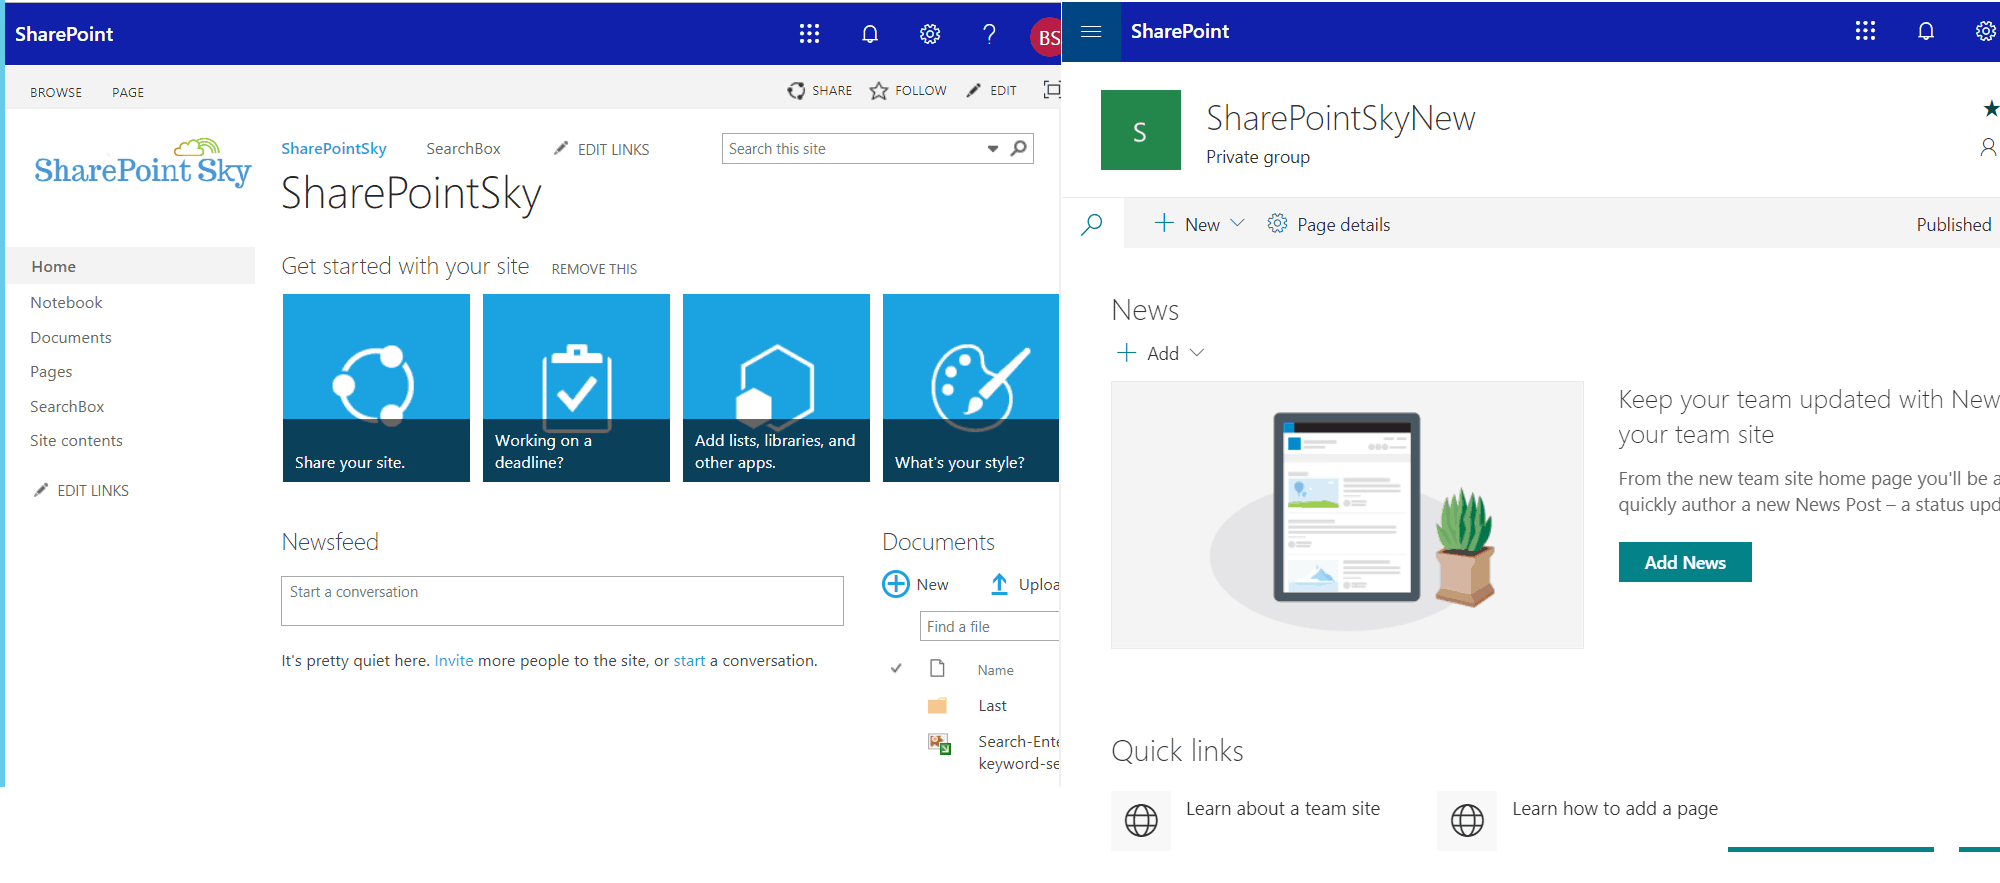 SharePoint classic and modern experiences